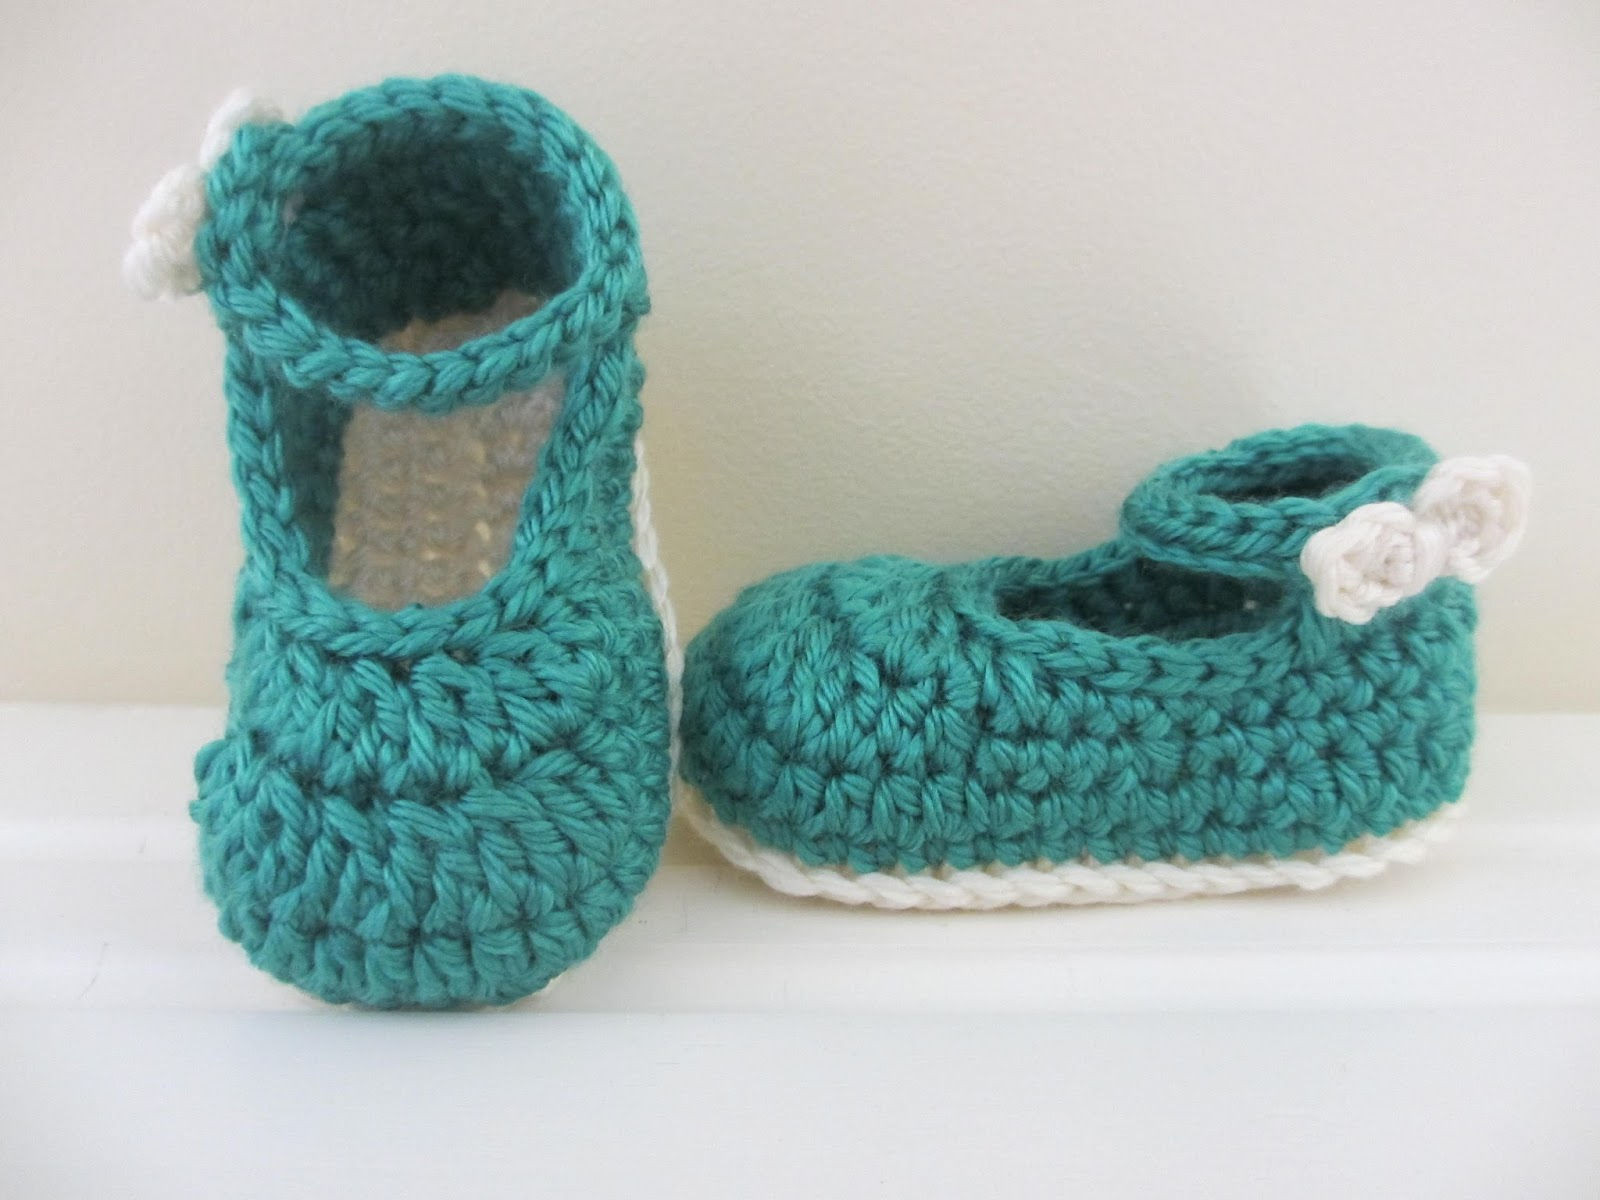 Elegant Crochet Mary Jane Baby Slippers Pattern Free Crochet for Baby Of New 46 Pictures Crochet for Baby